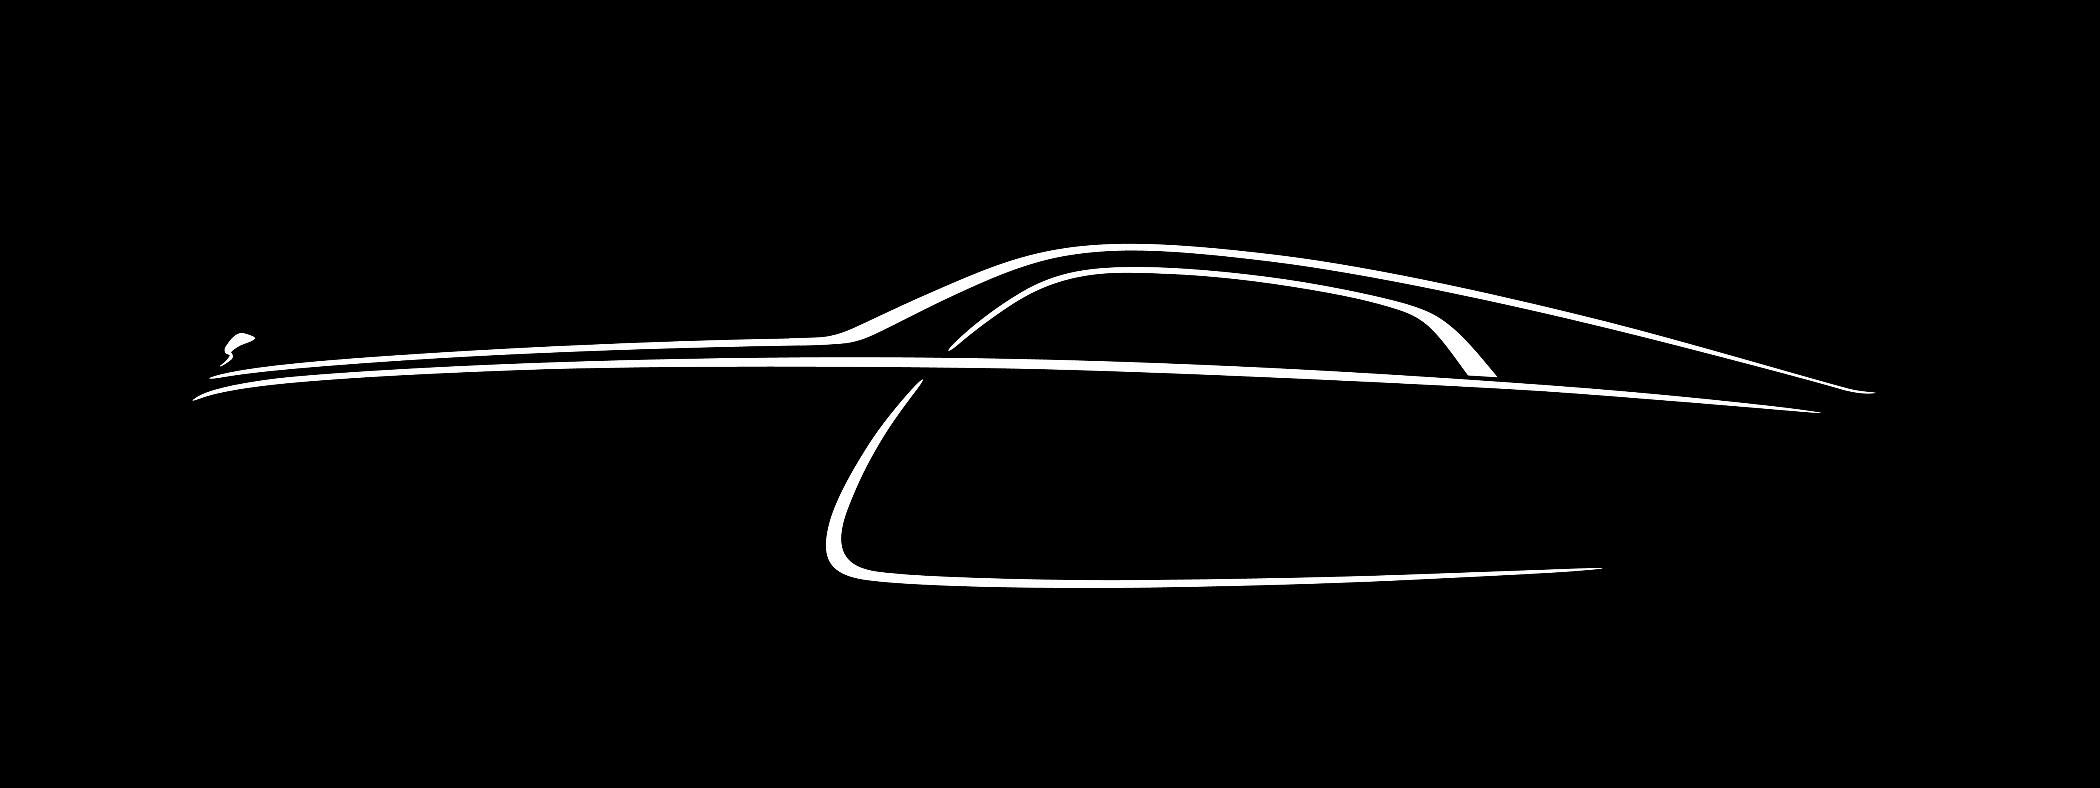 2100x788 Final 2014 Rolls Royce Wraith Teaser Confirms Fastback Design